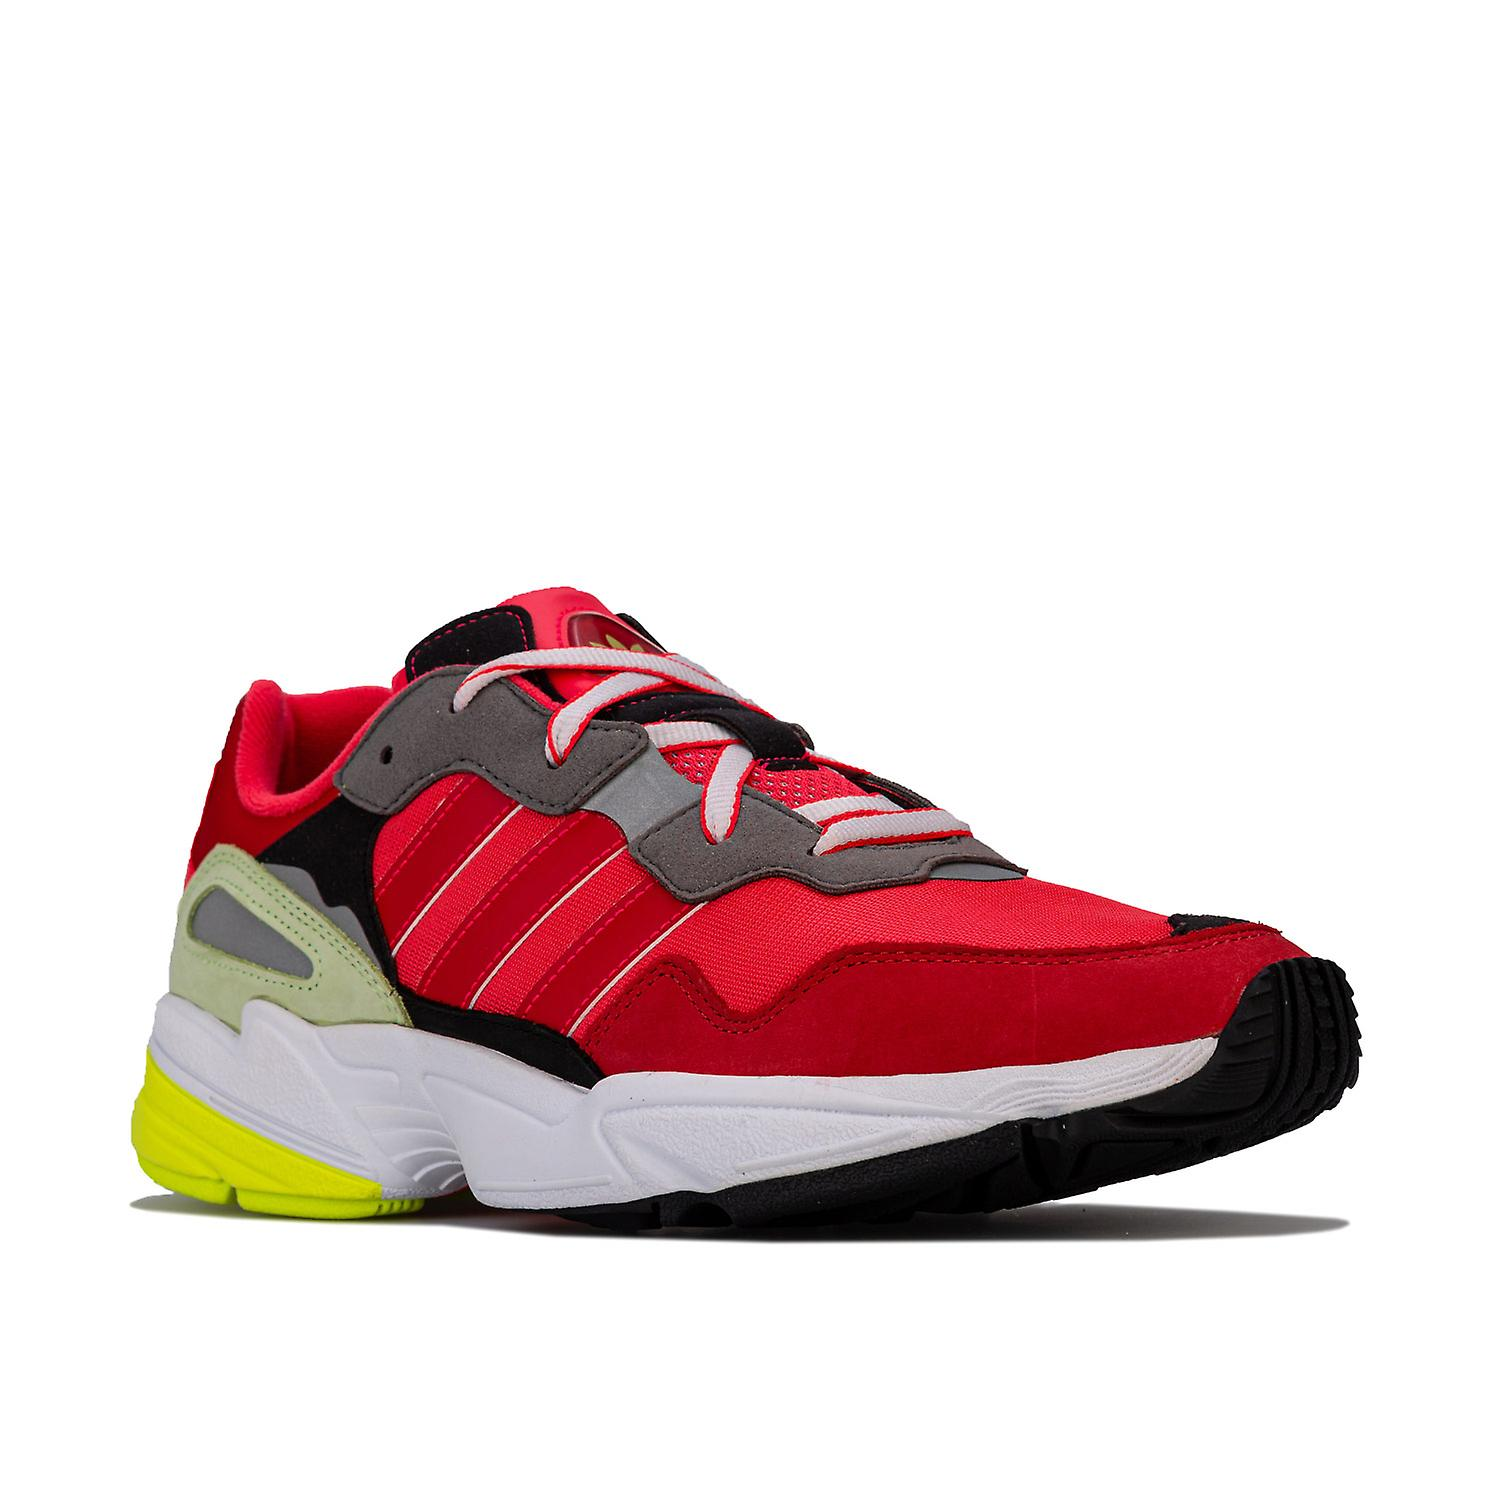 Adidas Originals Yung 96 kinesisk ny Yeartrainers i Collegiate Shock rød